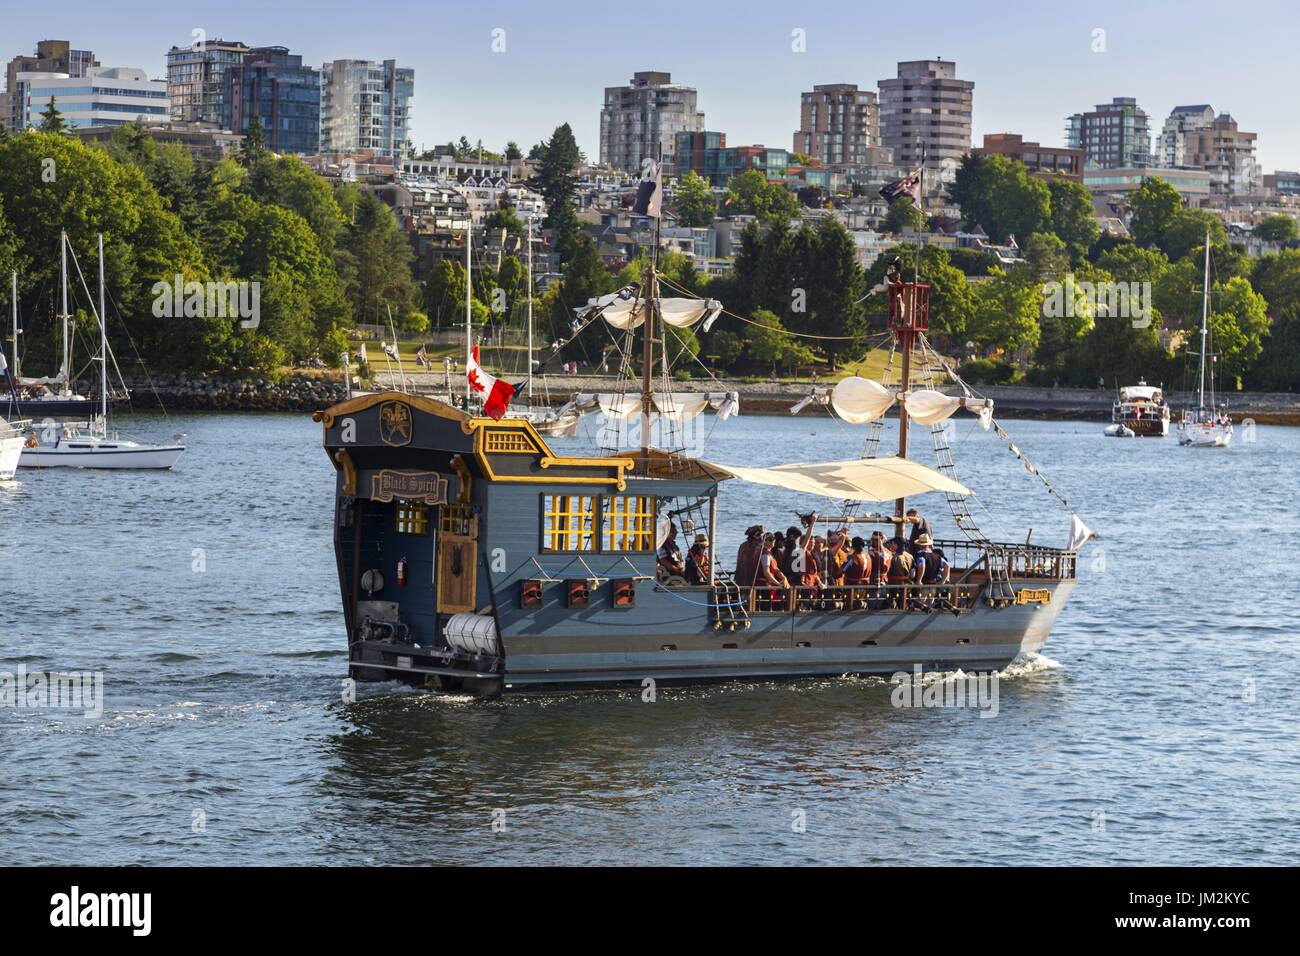 Black Spirit Pirate Cruise Ship with tourists sailing in False Creek across Granville Island Seawall in Vancouver Stock Photo